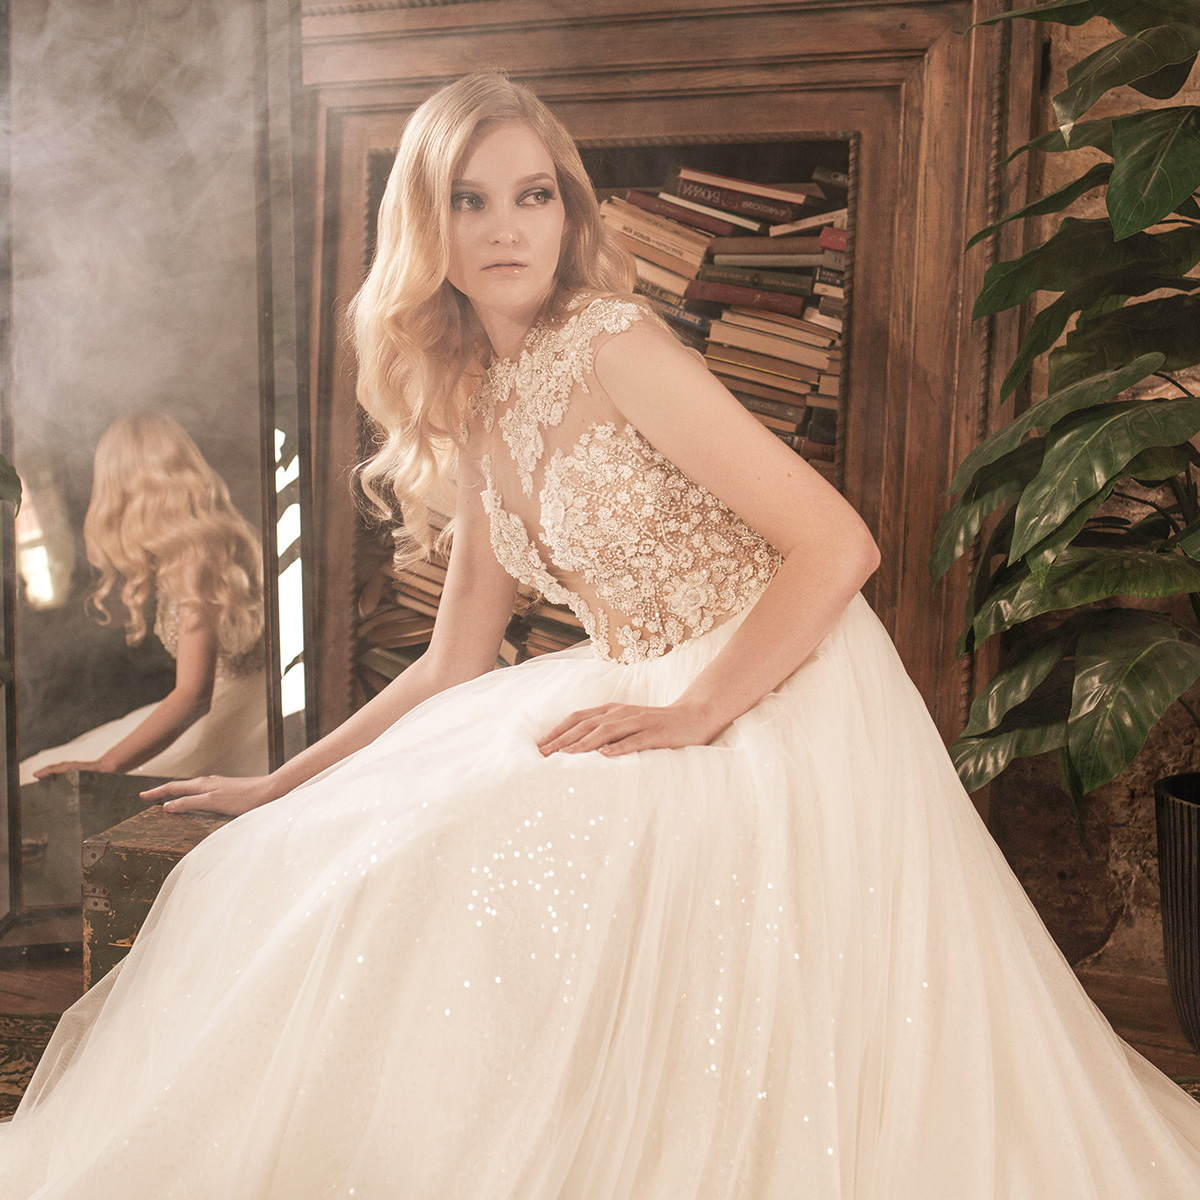 mistrelli 2021 royal drama bridal wedding inspirasi featured wedding gowns dresses and collection